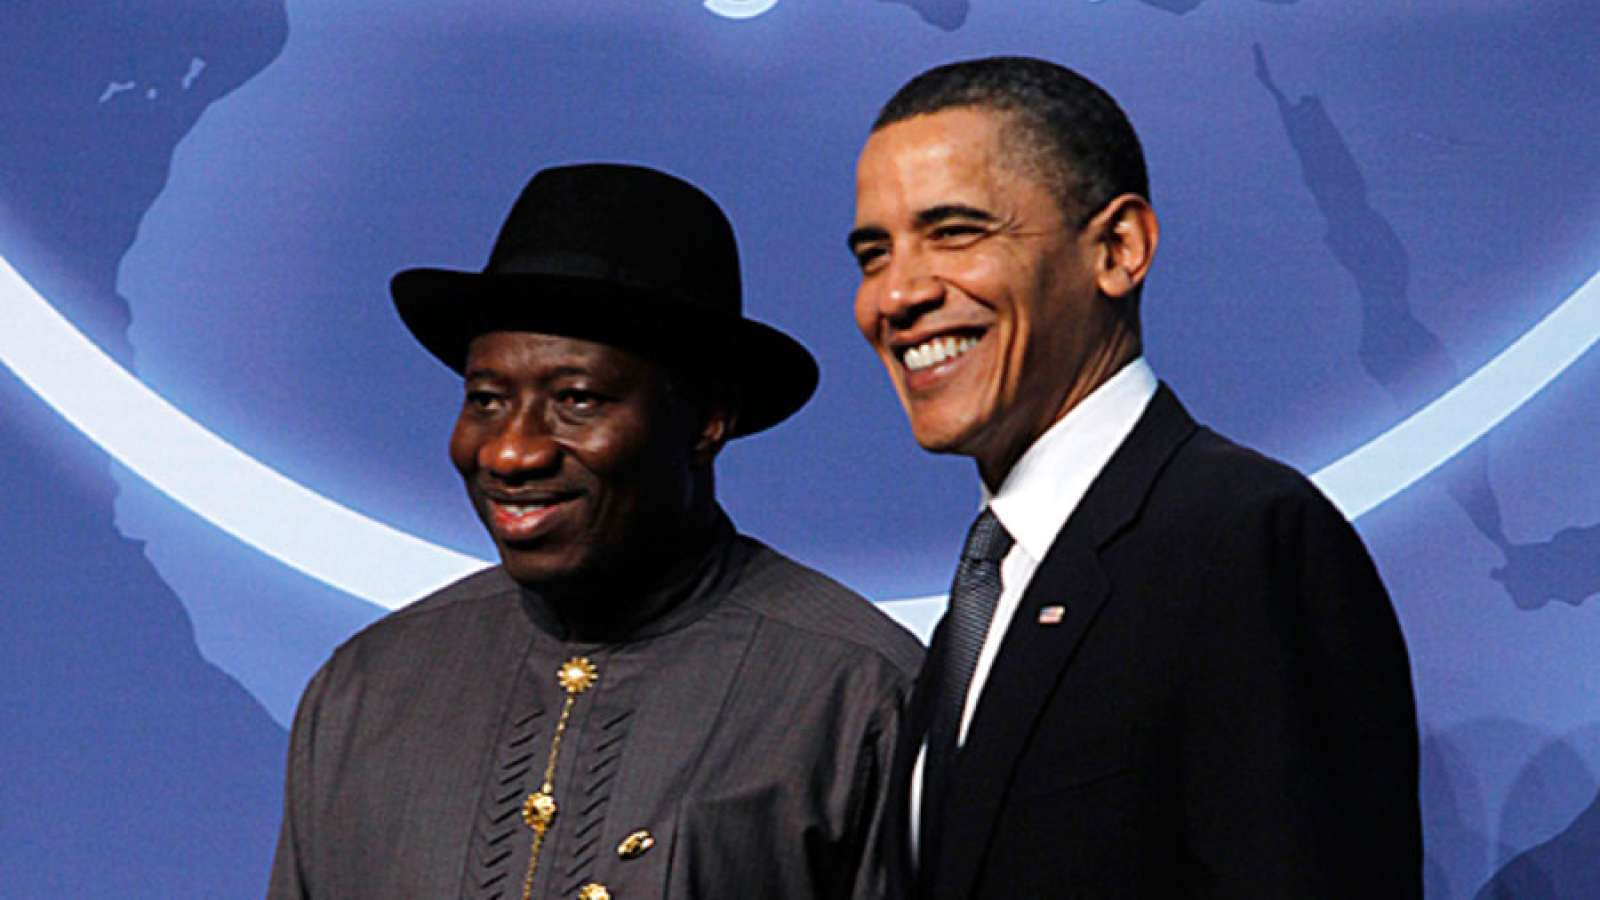 •Ex-presidents Jonathan and Obama